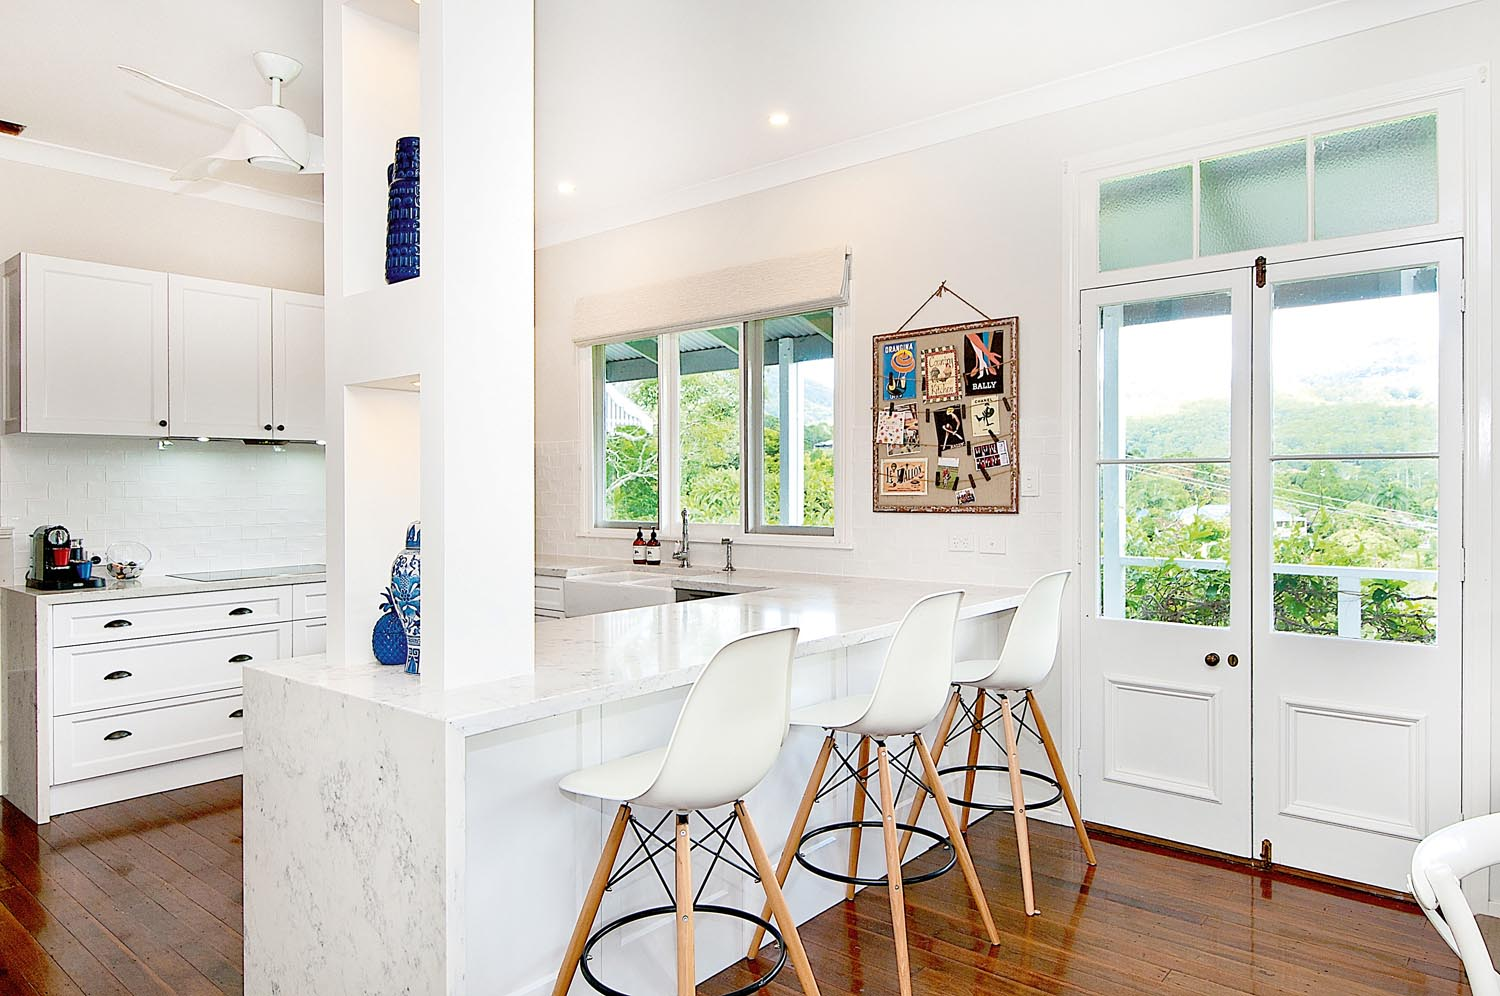 This open white kitchen lets the light in perfectly